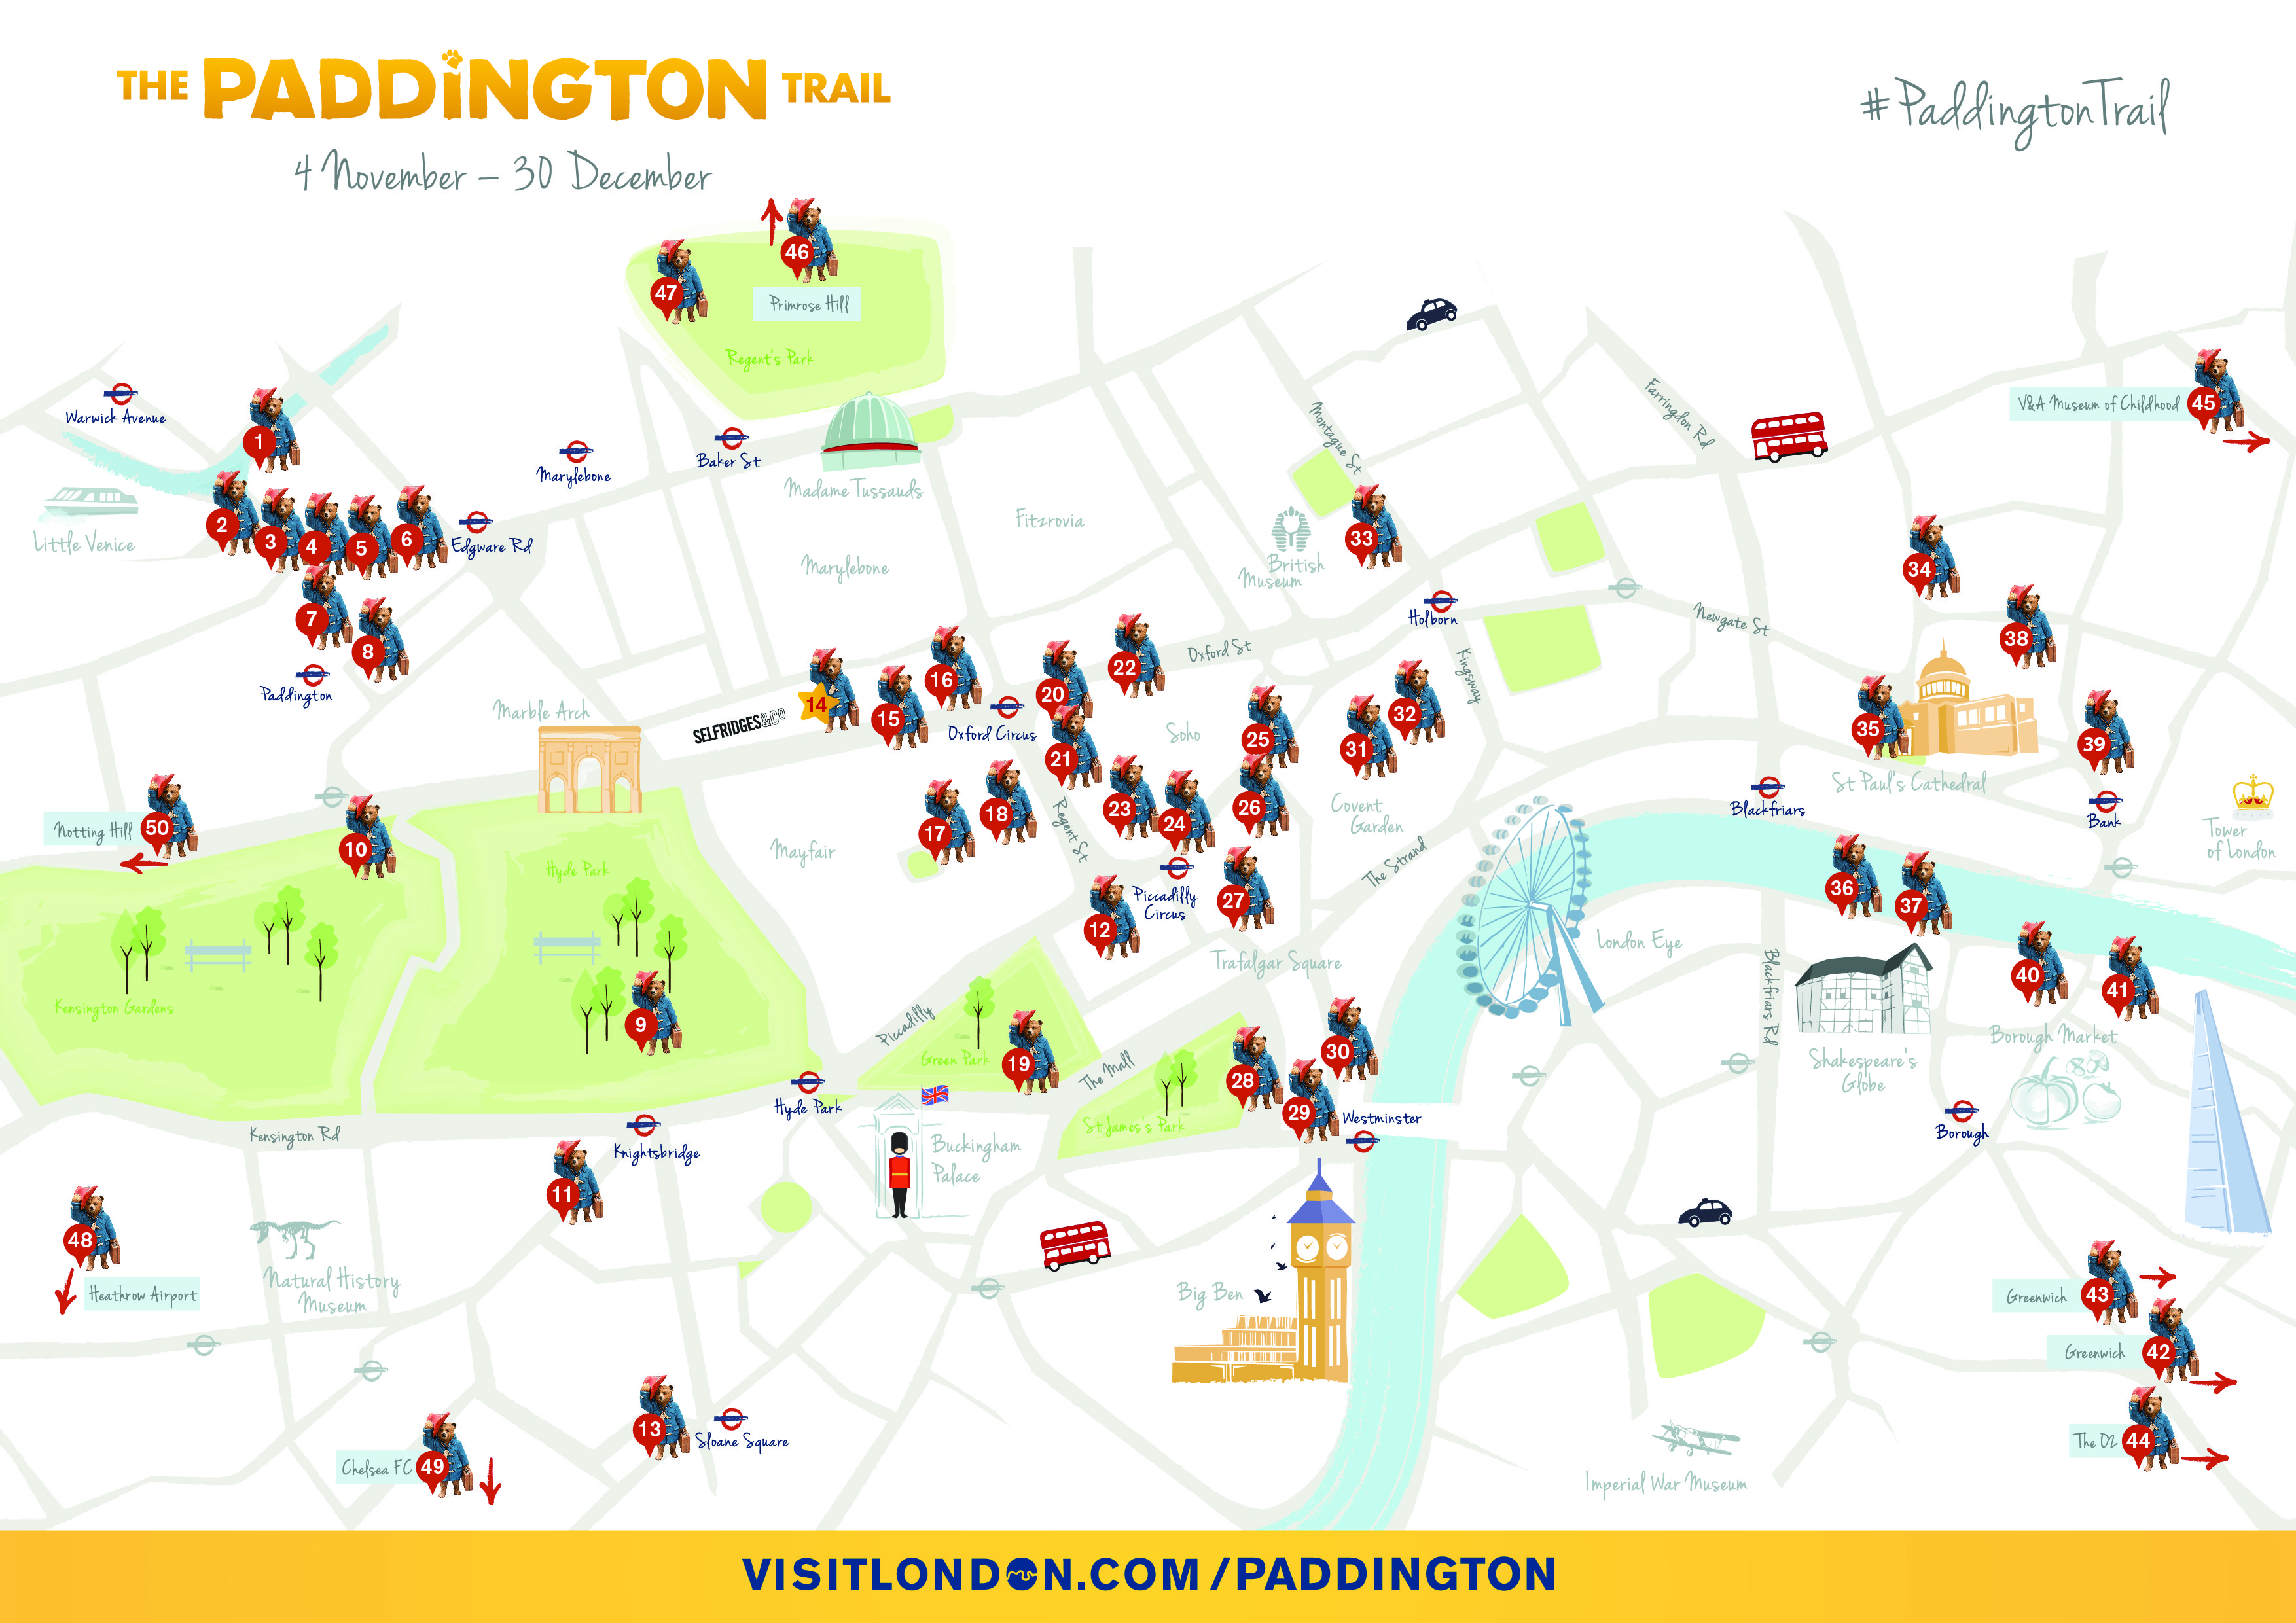 Carte Du Paddington Trail Jusquau 31 Decembre 2014